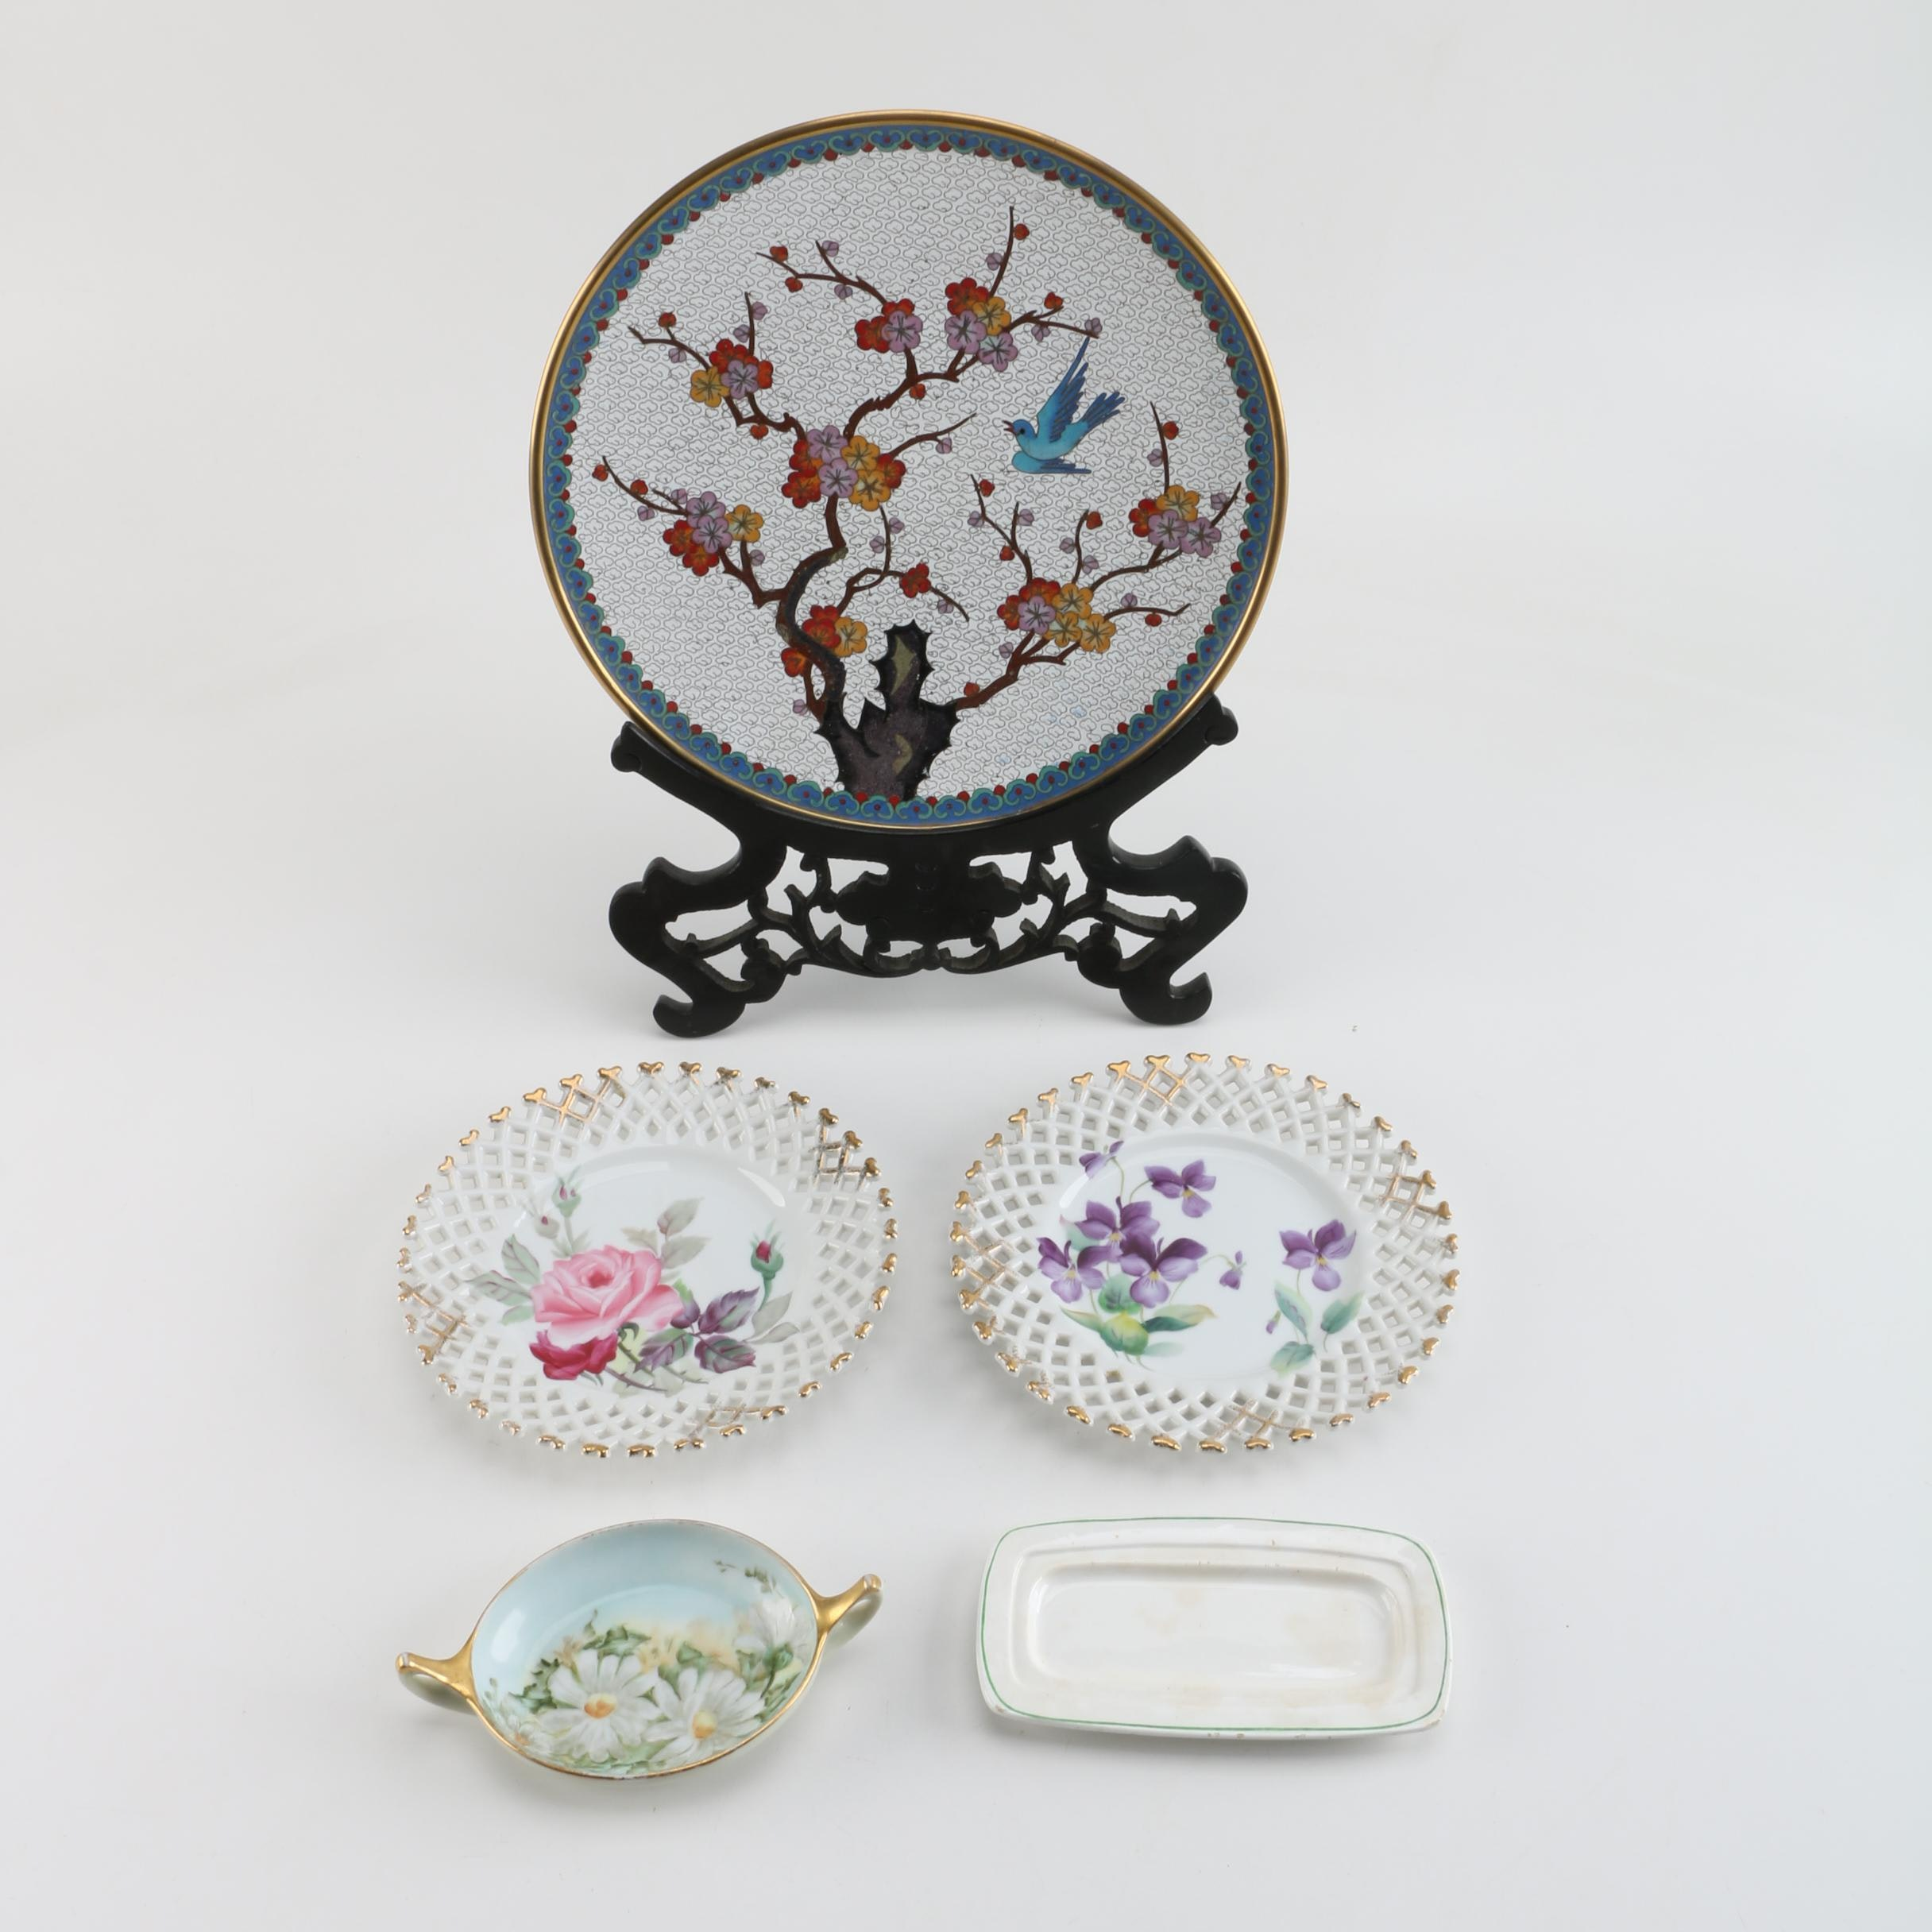 Chinese Cloisonné Plate with Lefton and Hobbyist Painted Porcelain